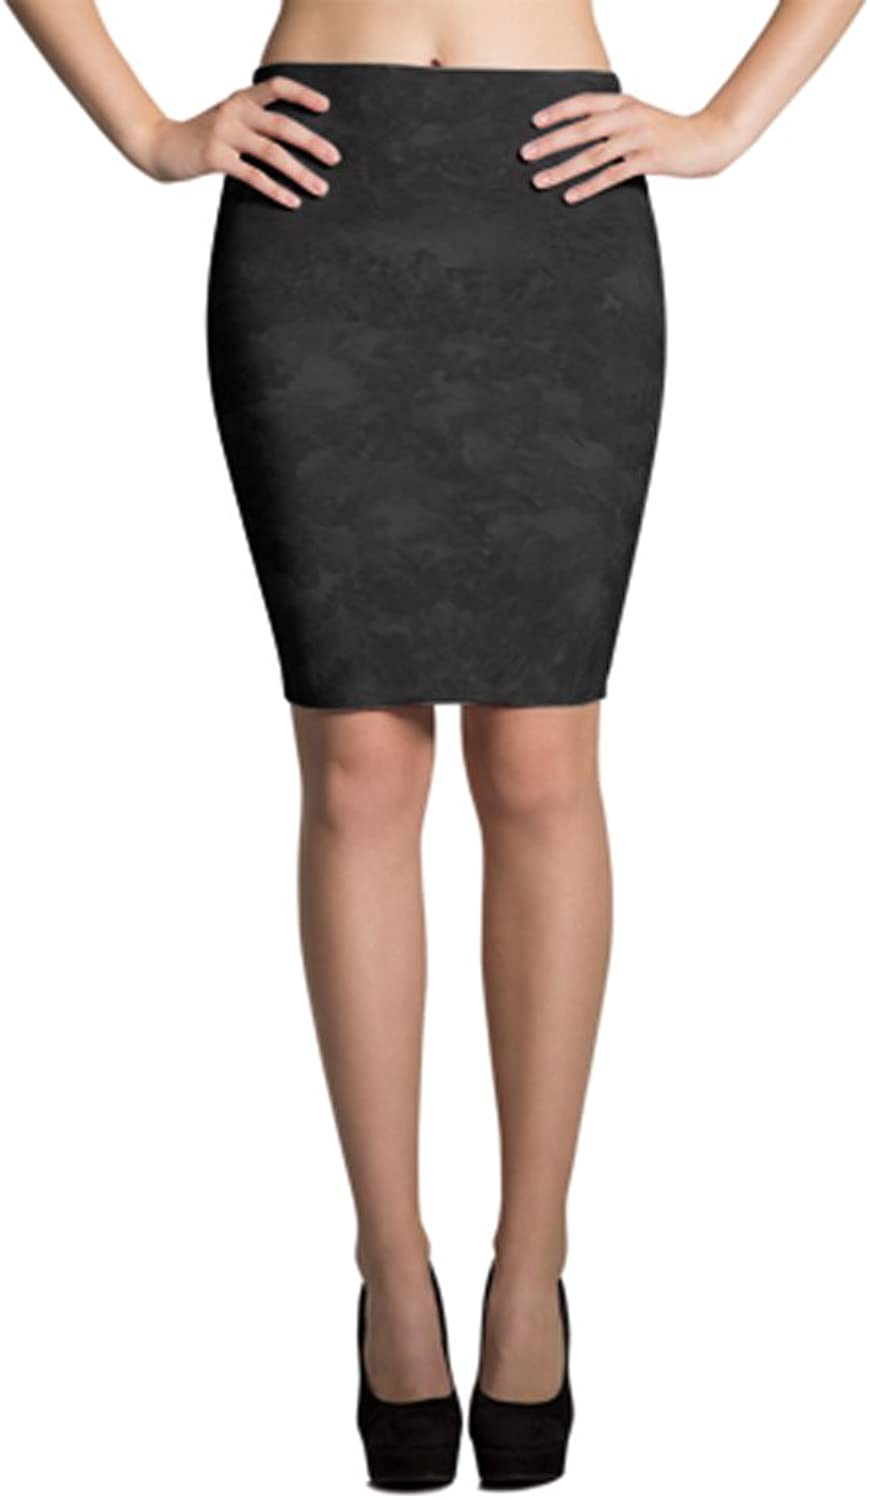 Fractaware Abstract Design Printed Pencil Skirt Premium Quality